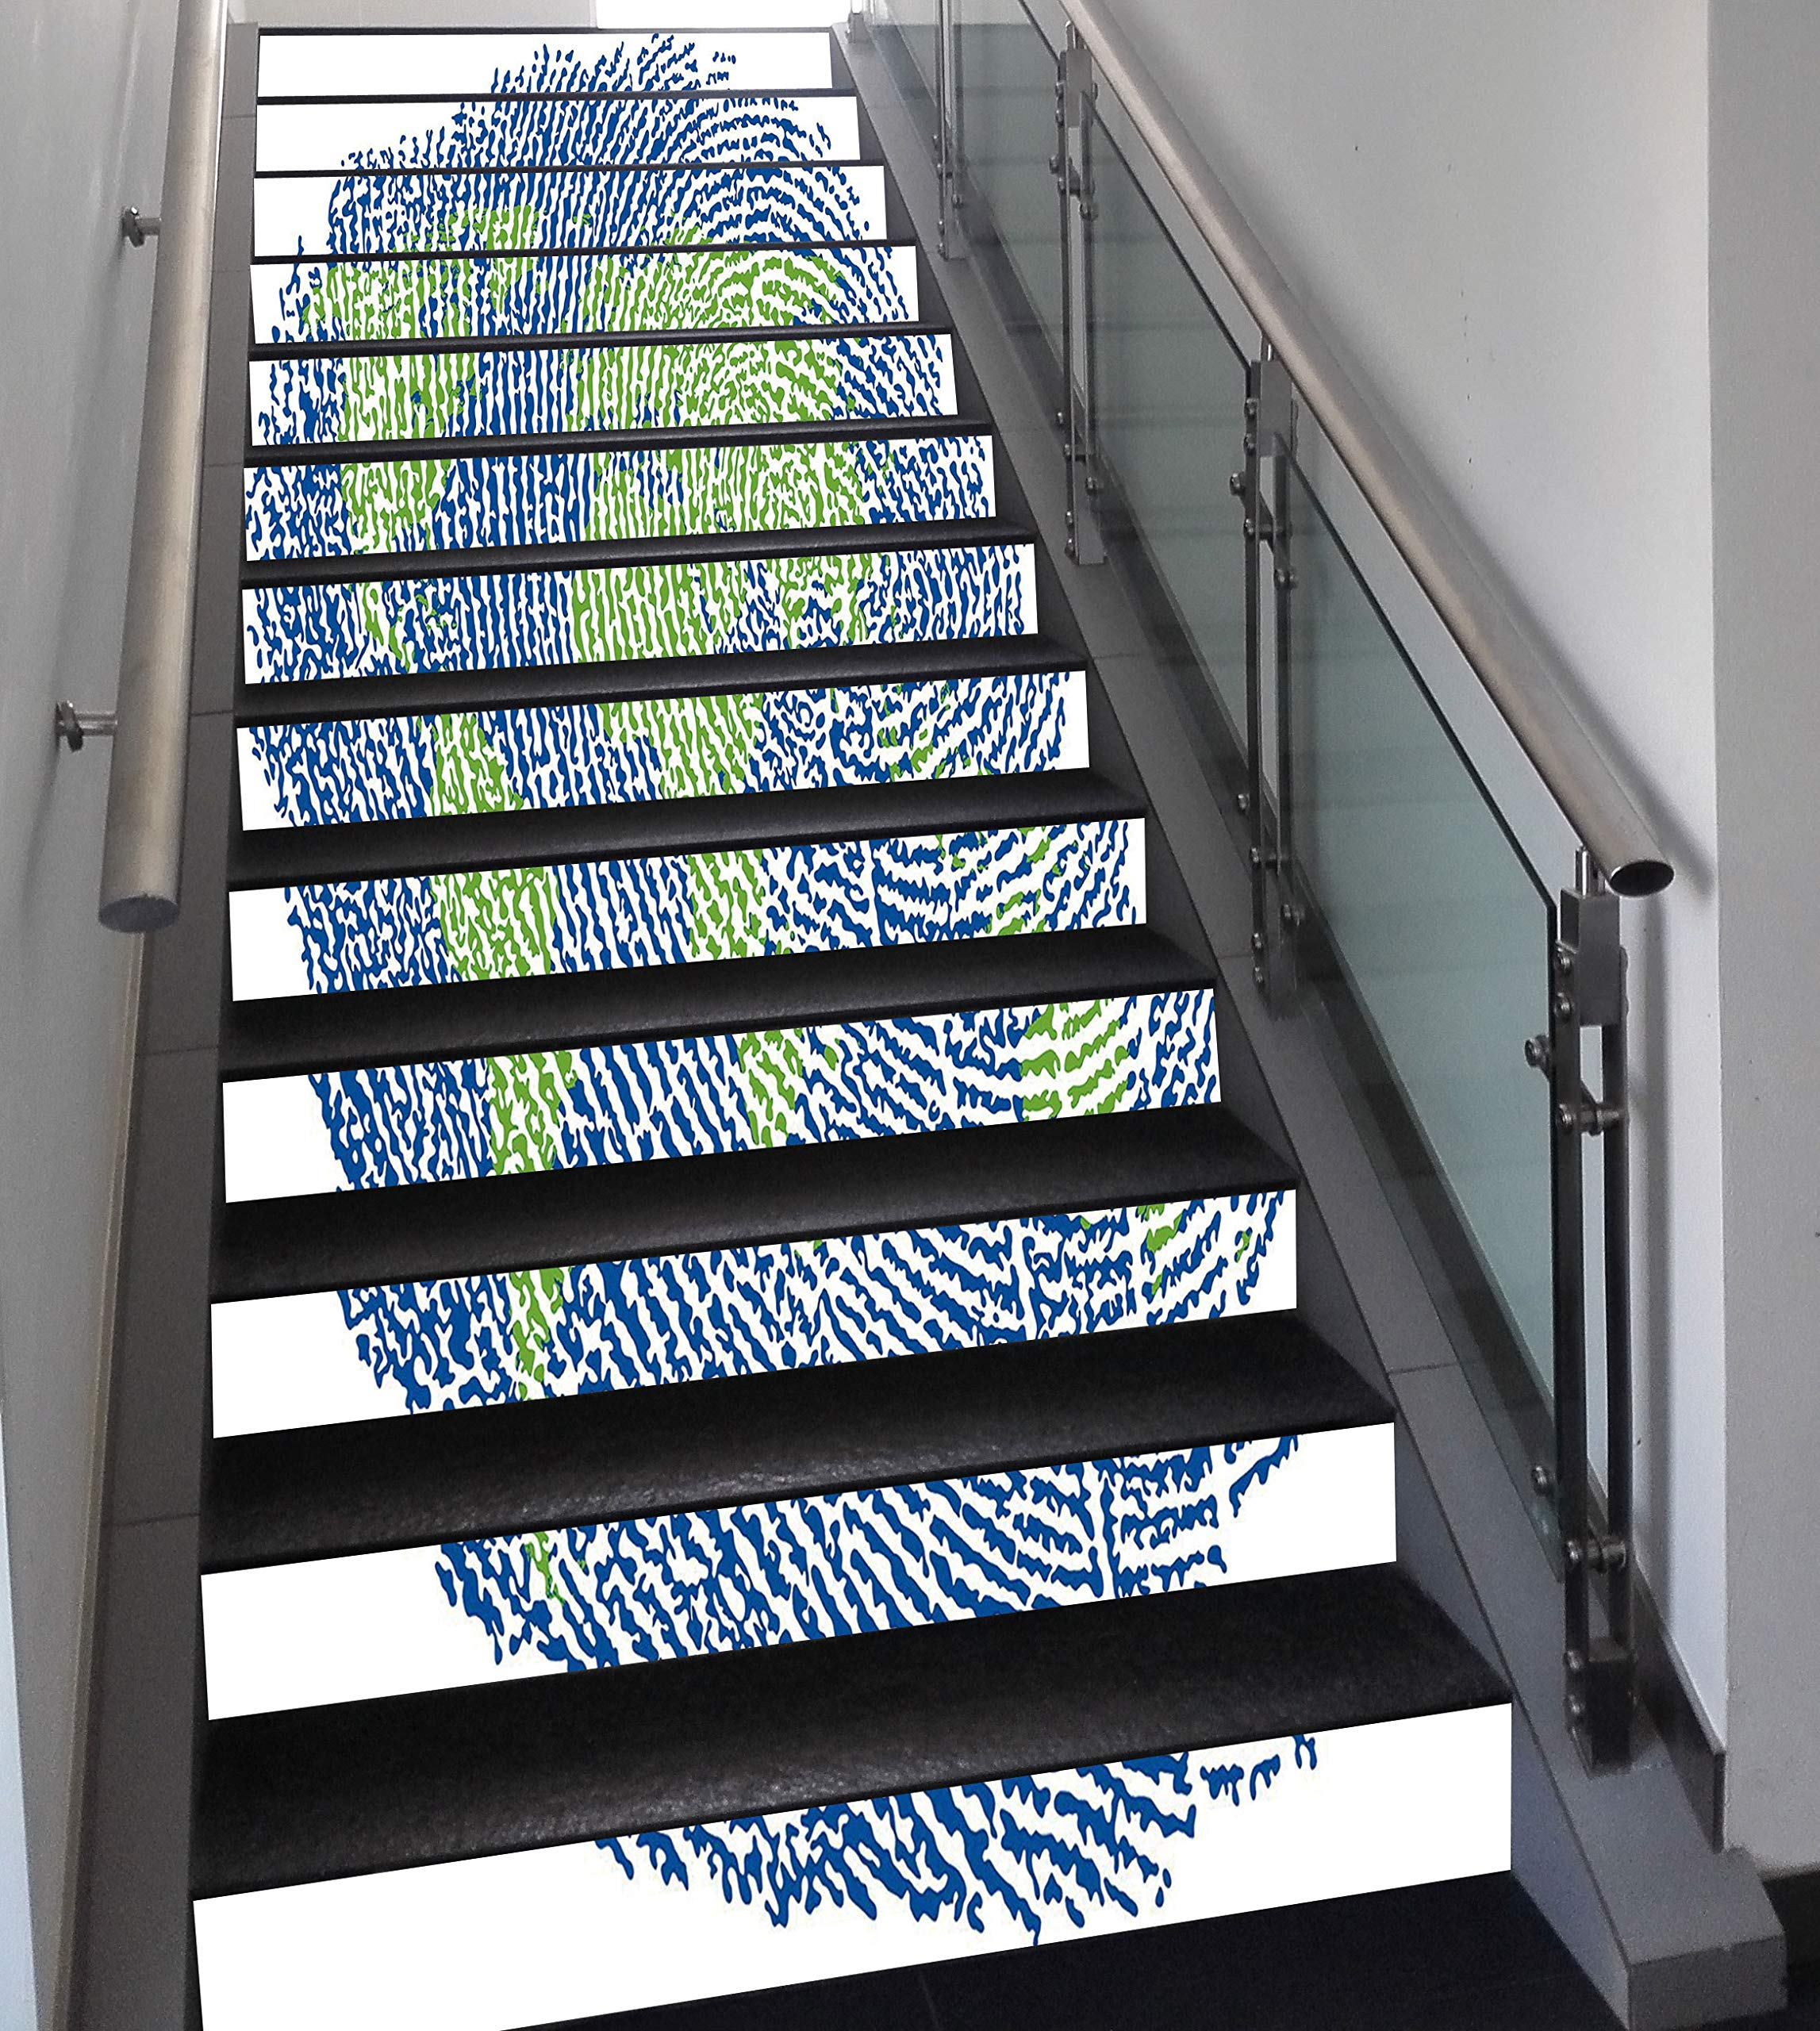 Stair Stickers Wall Stickers,13 PCS Self-Adhesive,World Map,Map of The World Fingerprint Style Continents Asia Europe Africa America,Navy Blue Green,Stair Riser Decal for Living Room, Hall, Kids Room